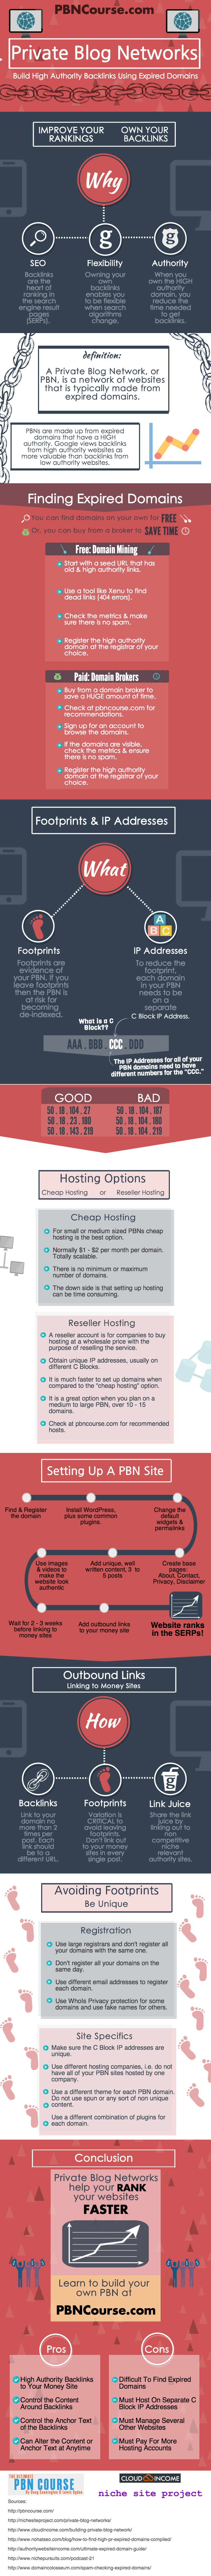 Best CHEAP PBN Hosting Reviews 2018: How To Host Your PBN